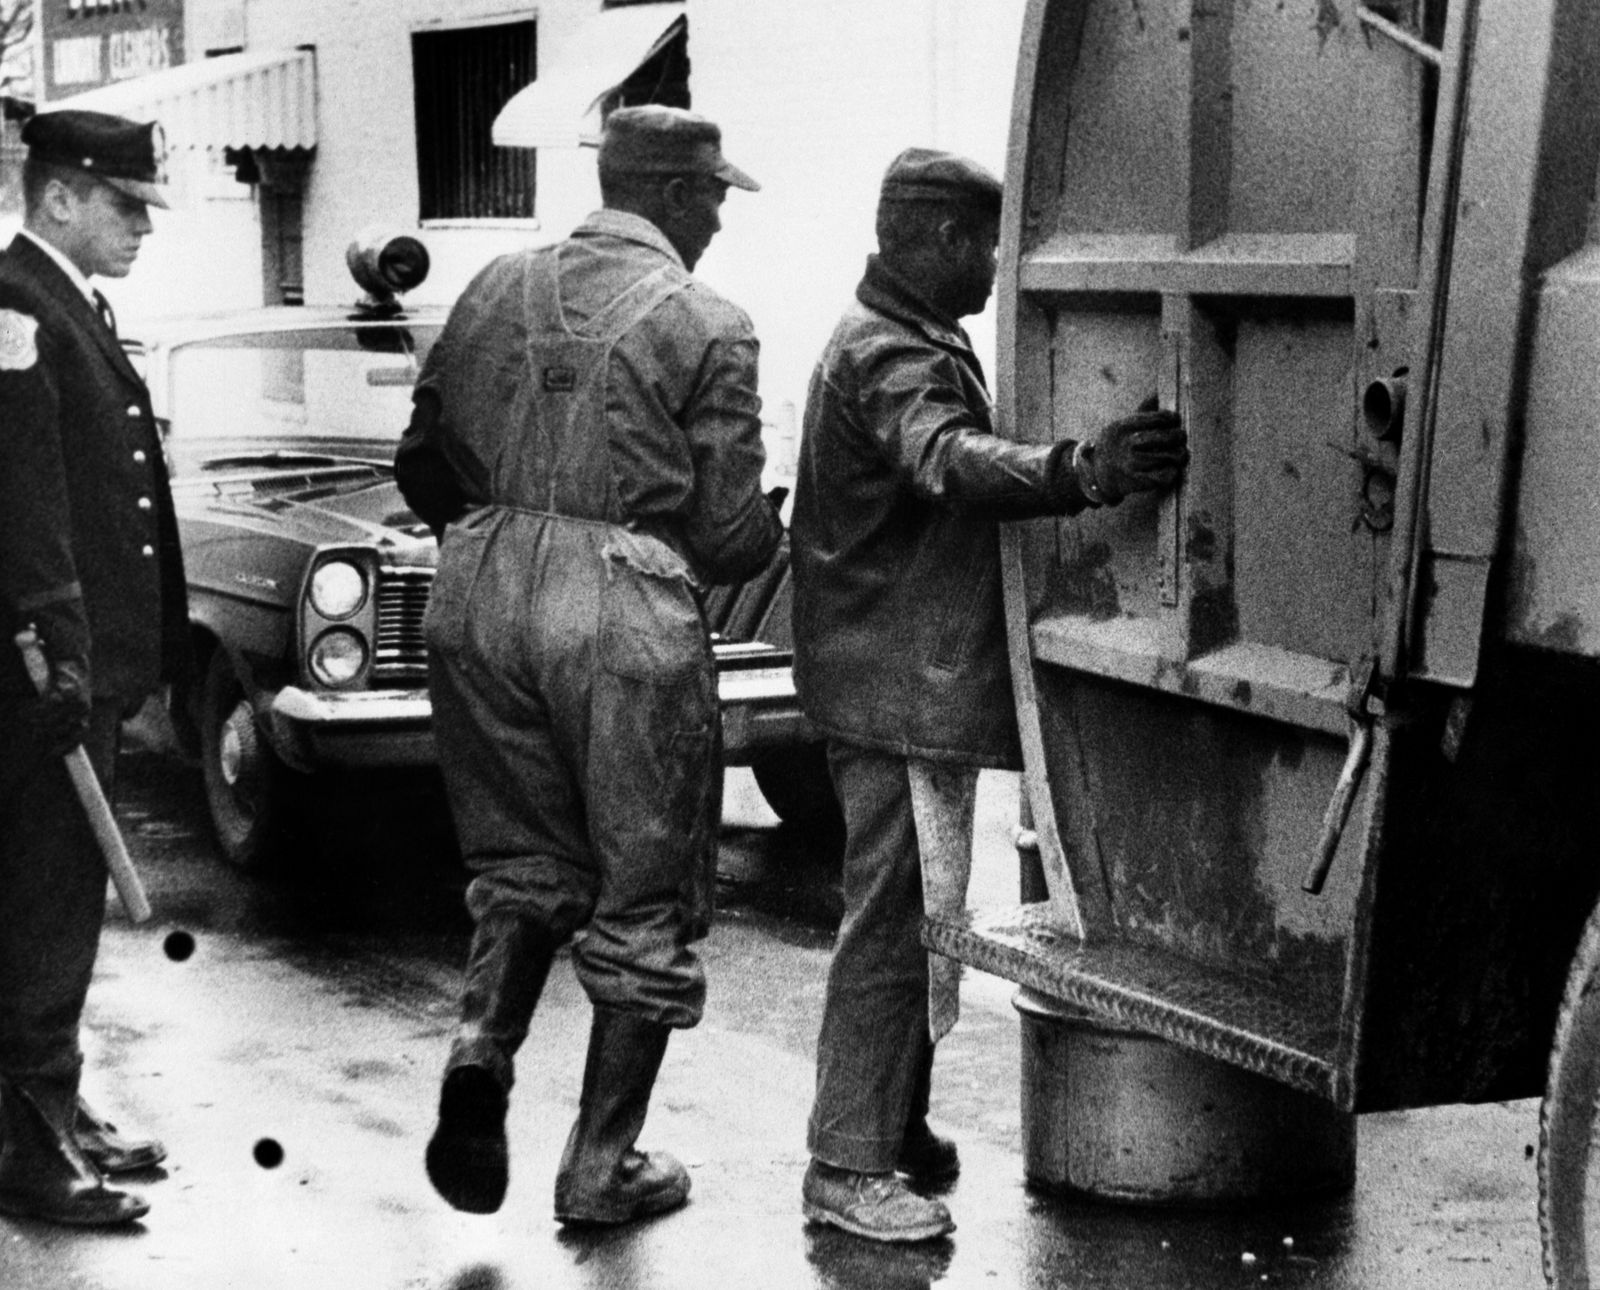 Two non-striking sanitation workers pick up trash in downtown Memphis. Bettmann Archive/Getty Images